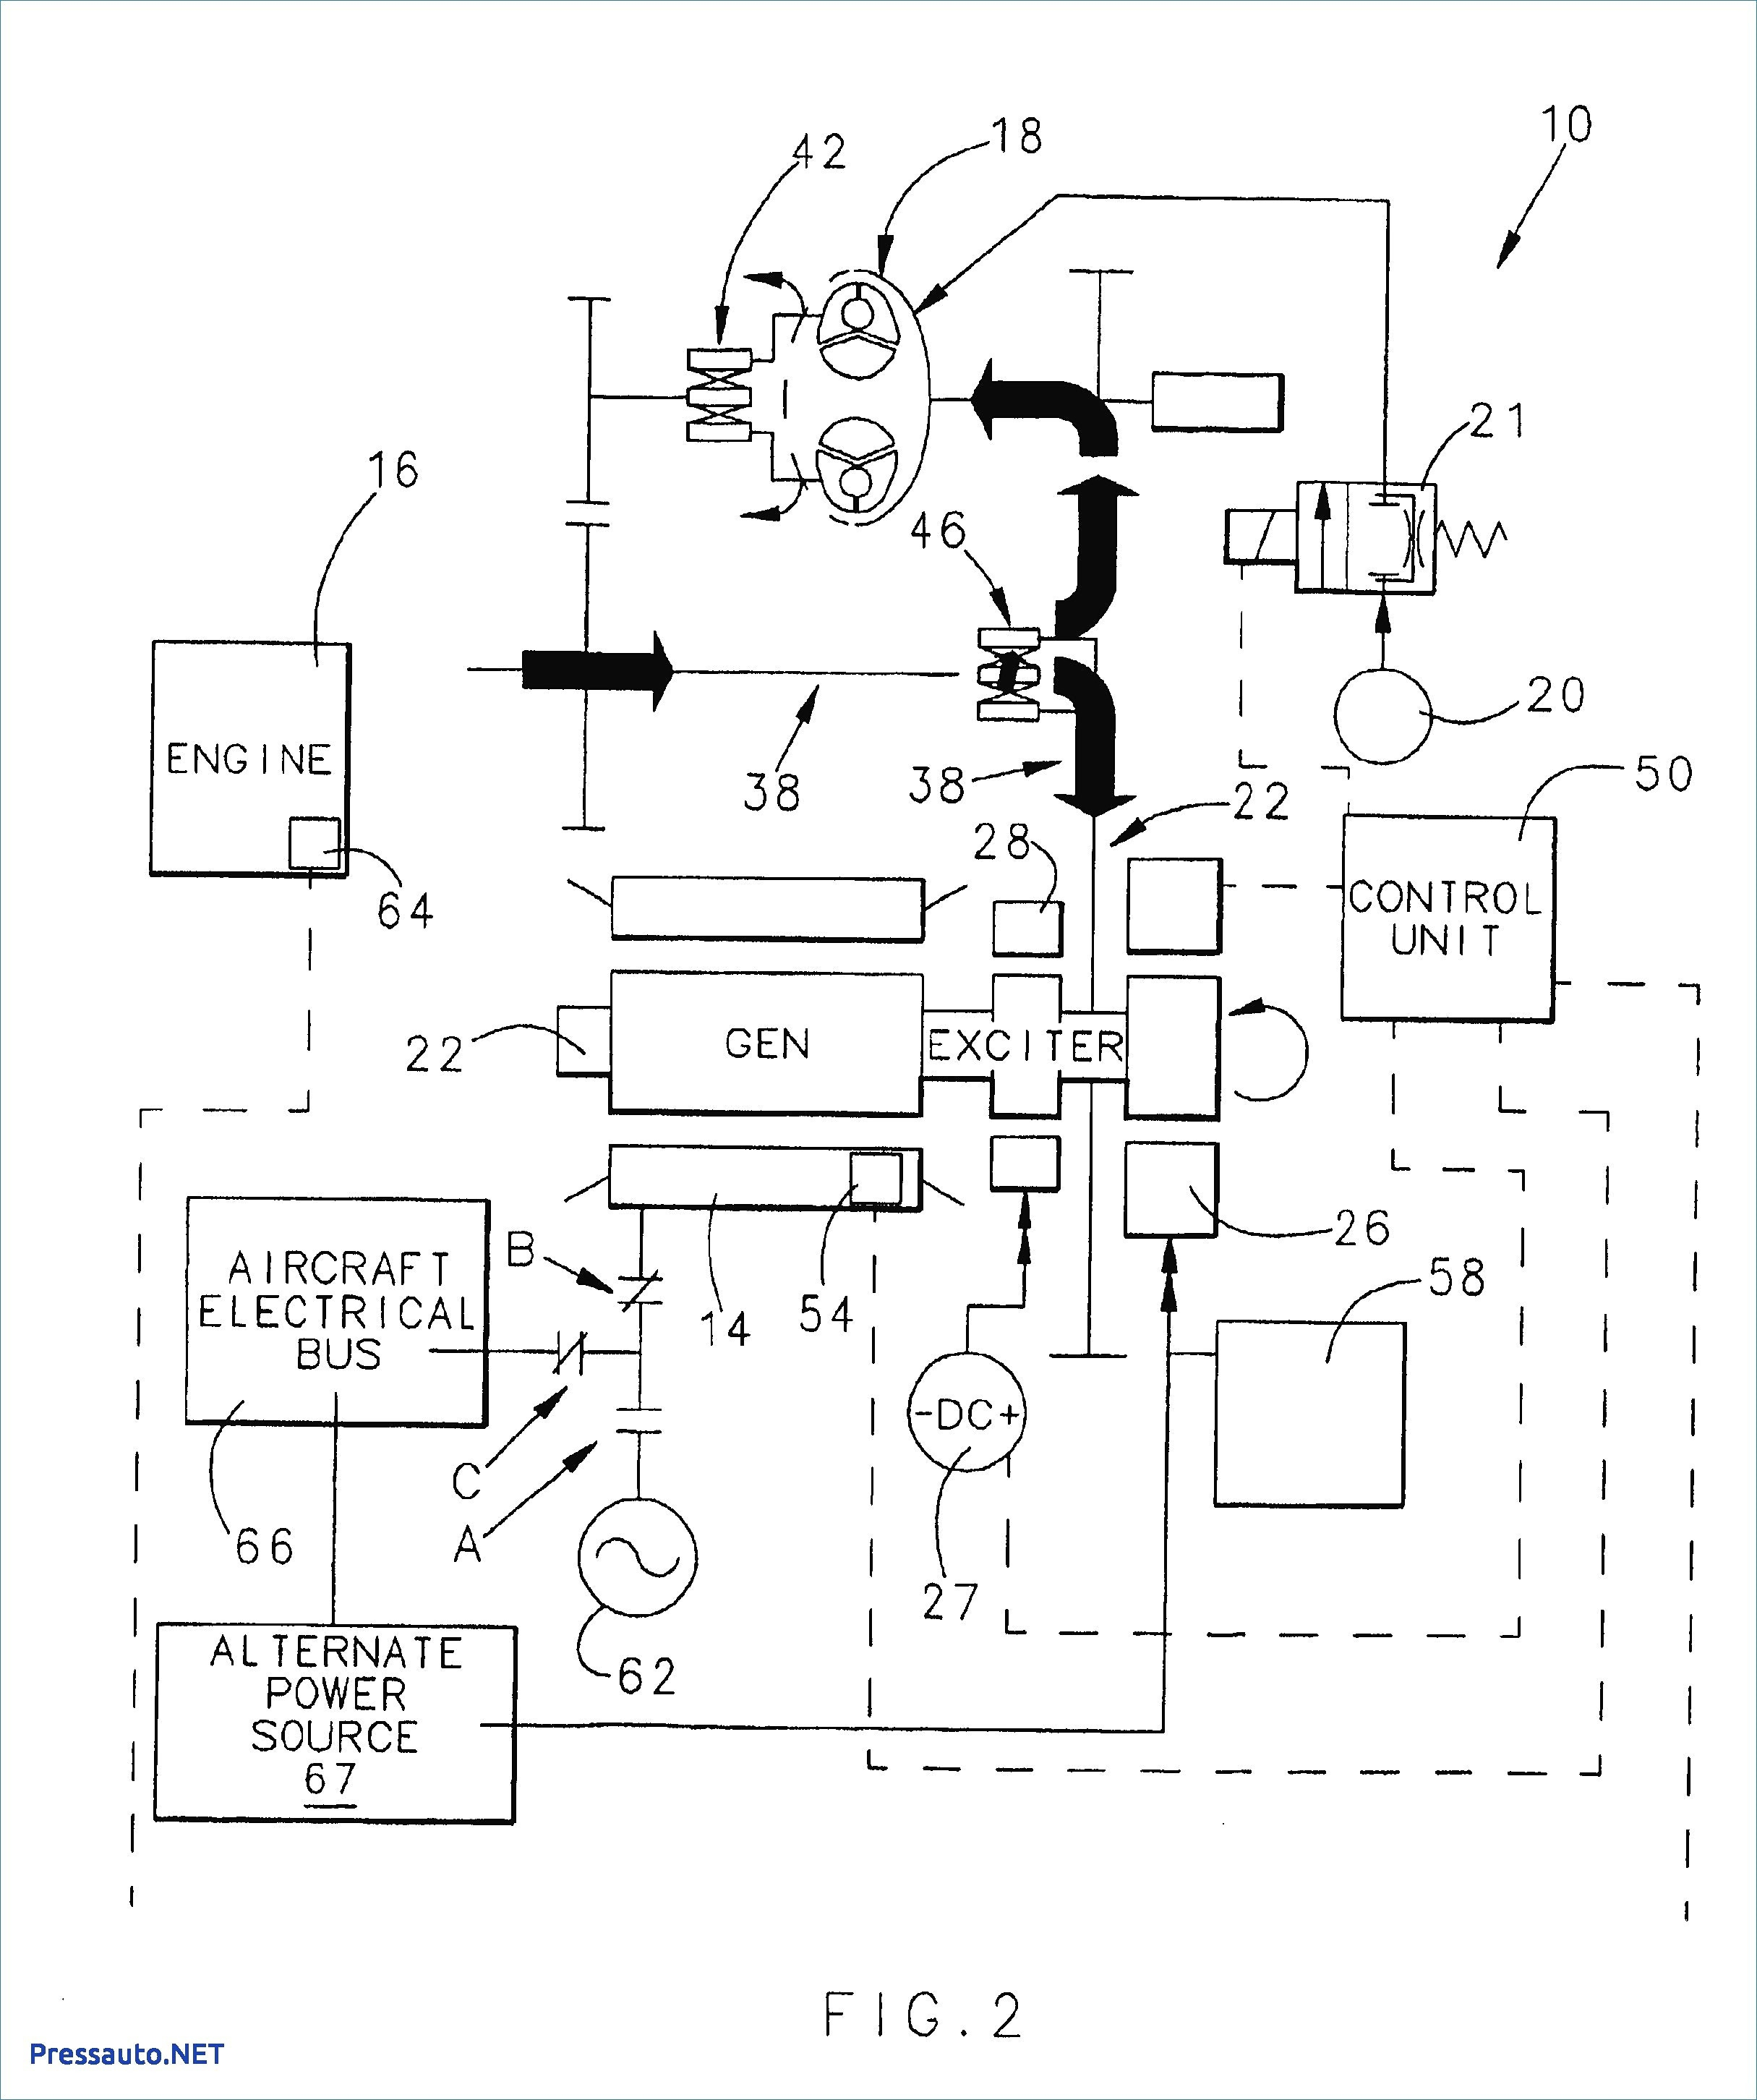 Wiring Diagram For Ac Delco Alternator